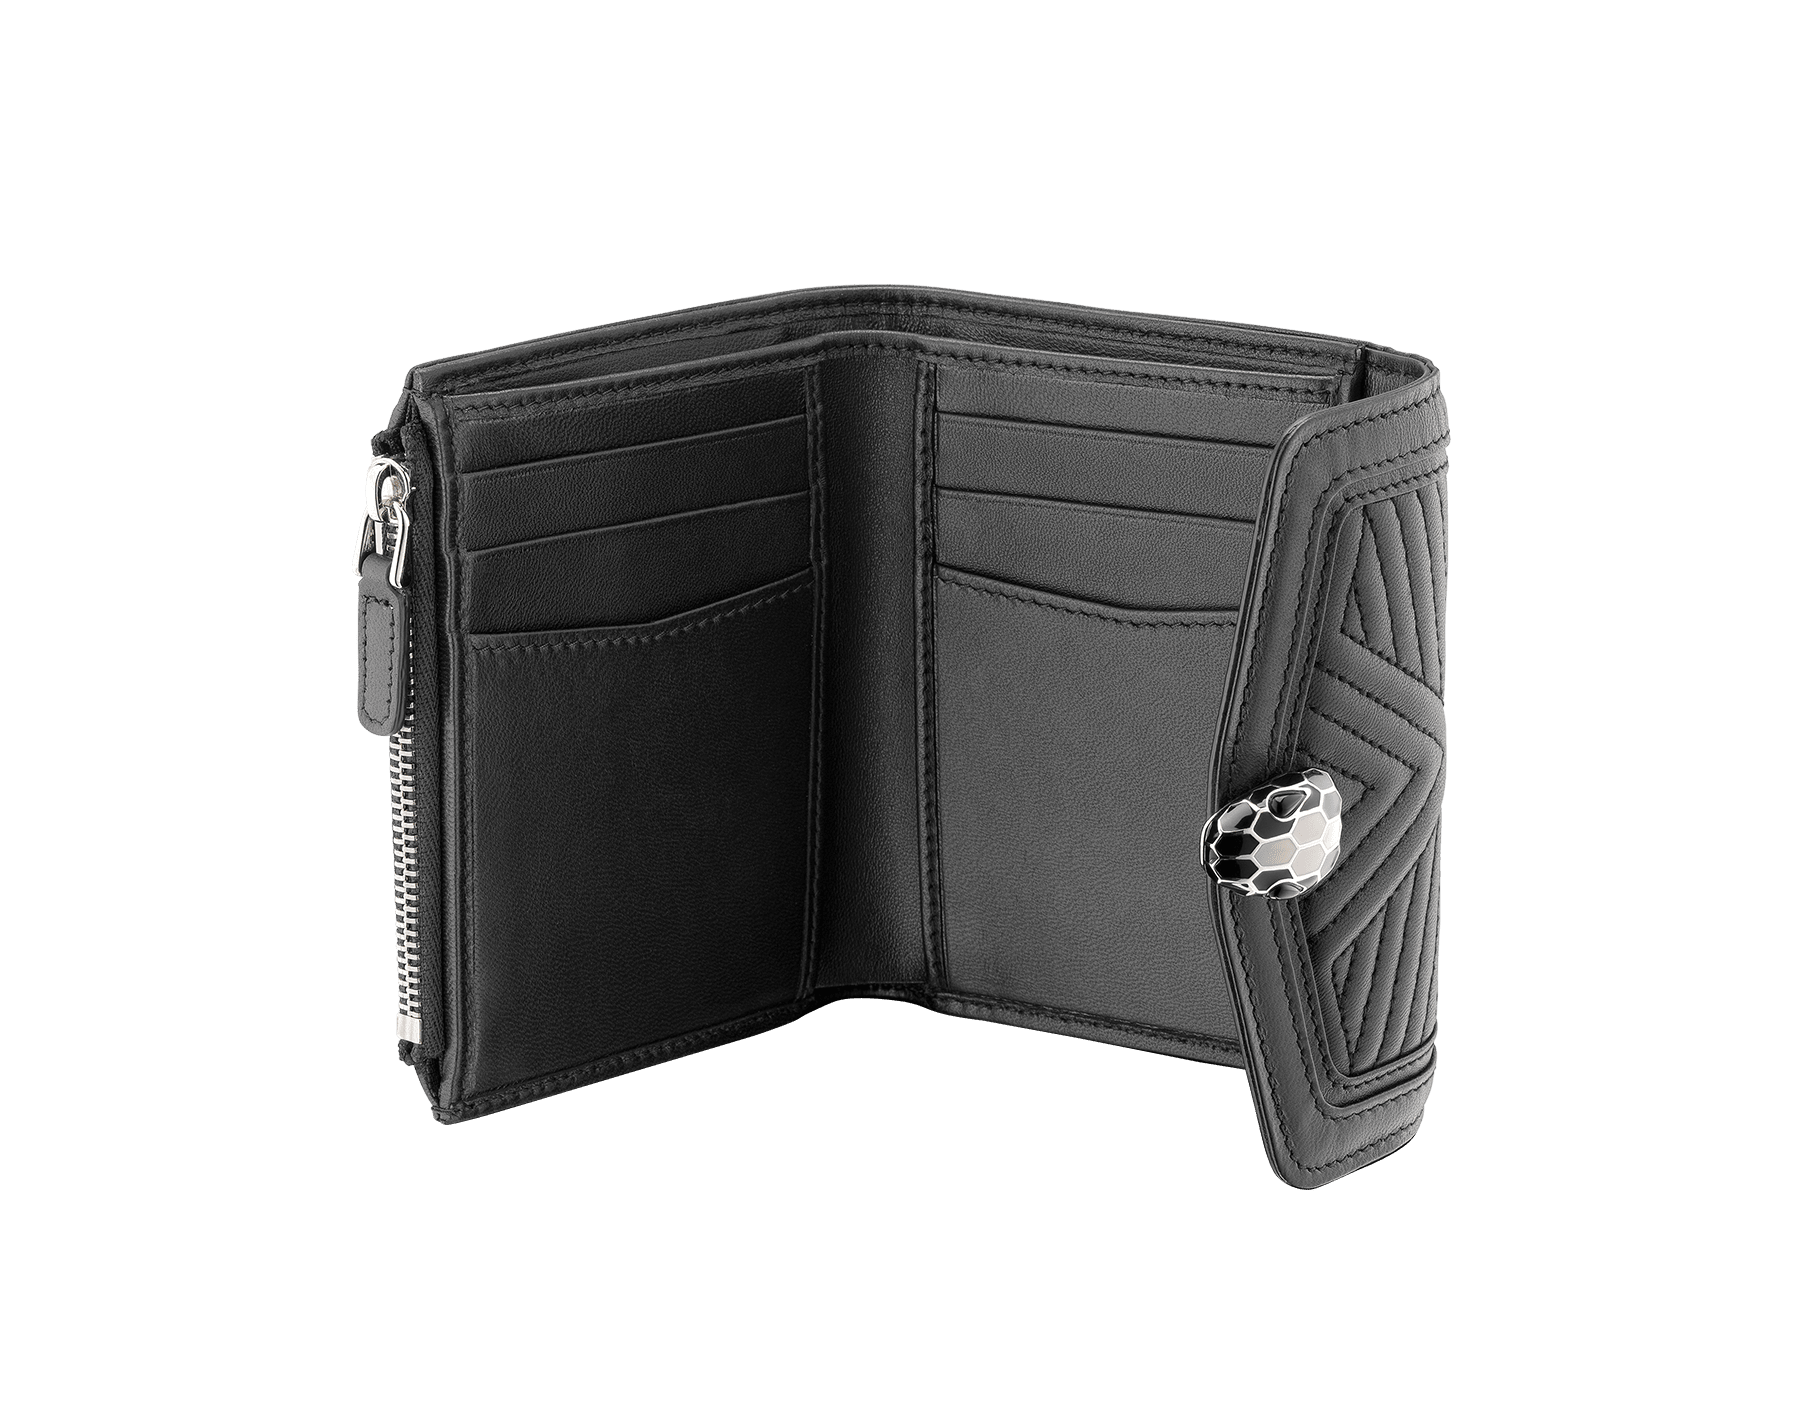 Serpenti Diamond Blast compact wallet in black quilted nappa leather. Iconic snakehead stud closure in black and white enamel, with black onyx eyes. 287596 image 2